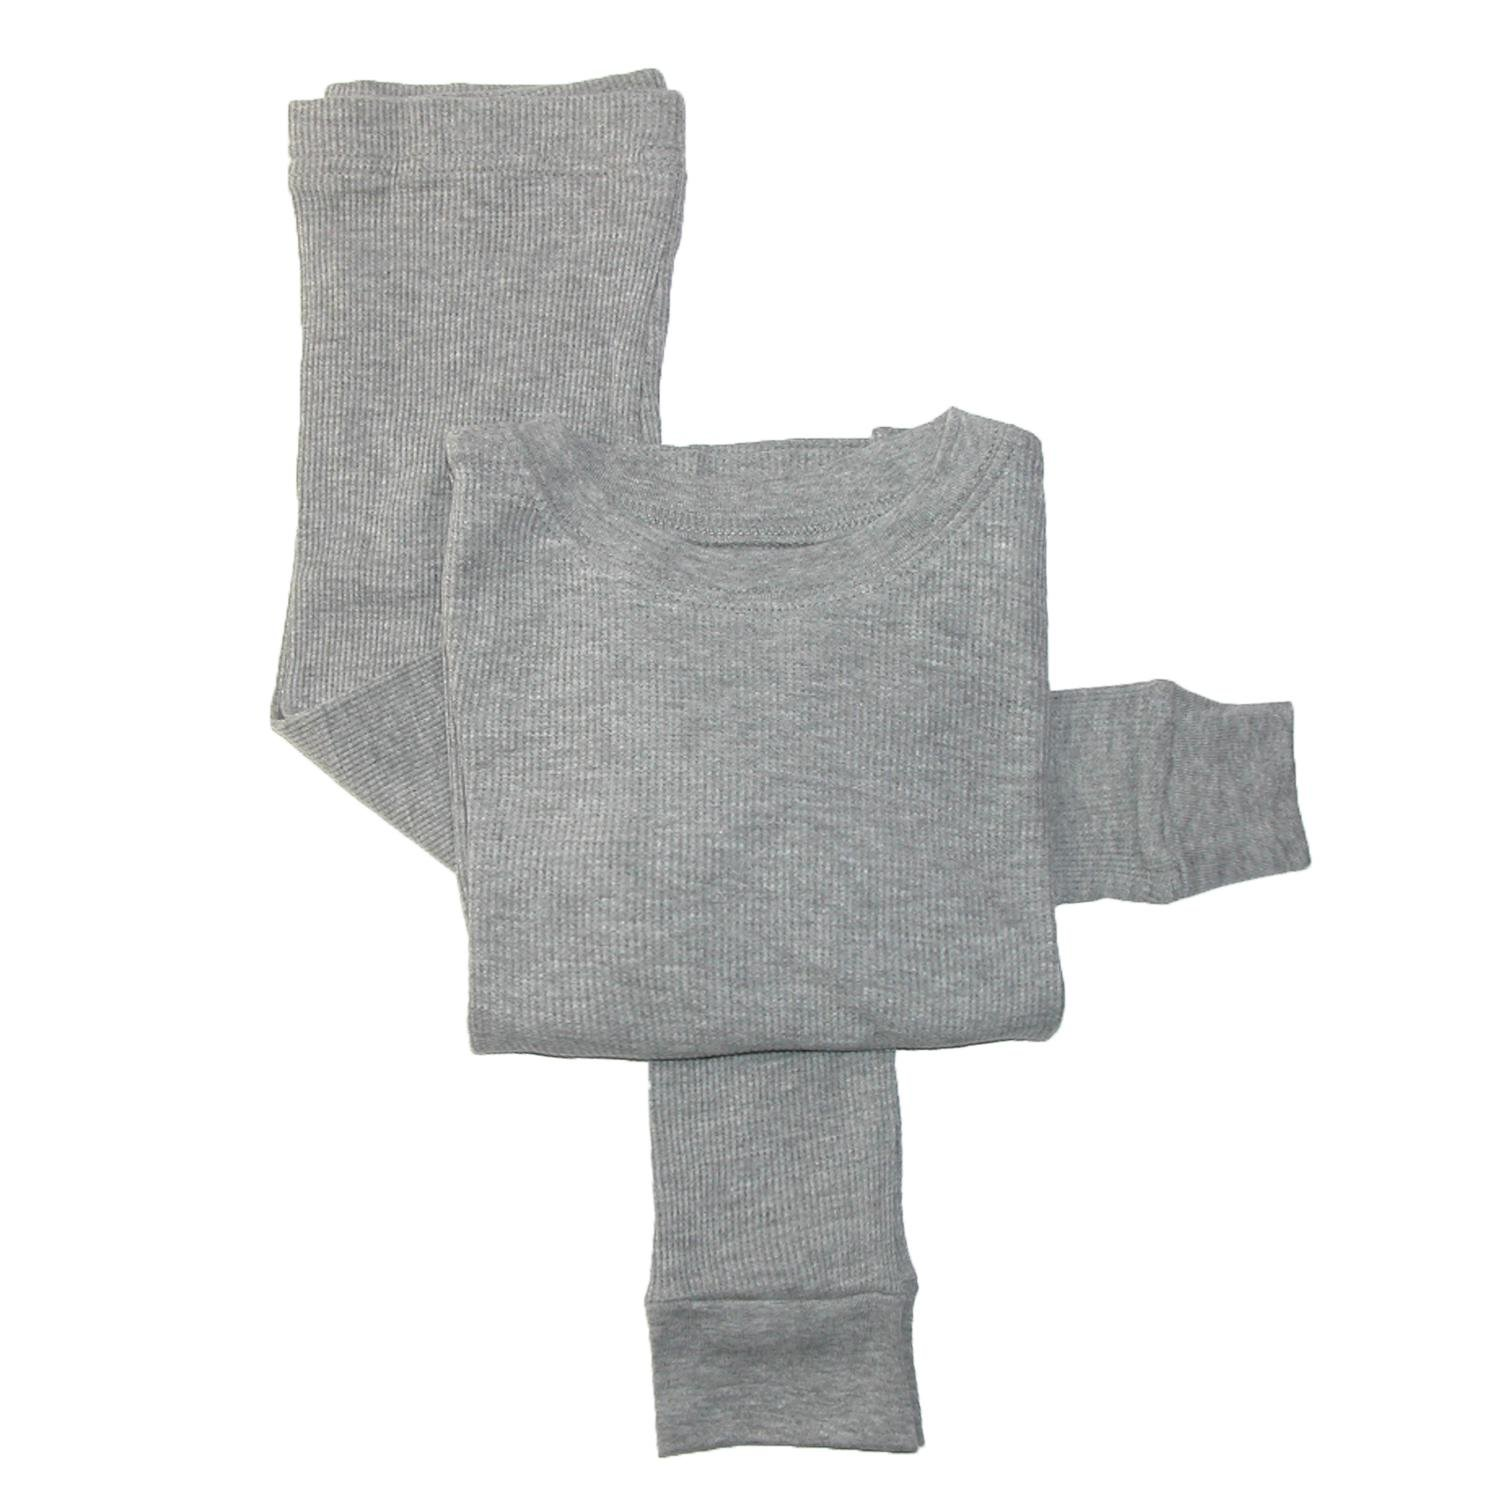 CTM Boys' Thermal Top and Bottom Set 16/18 Heather Grey TE-9119-GRY-16/18